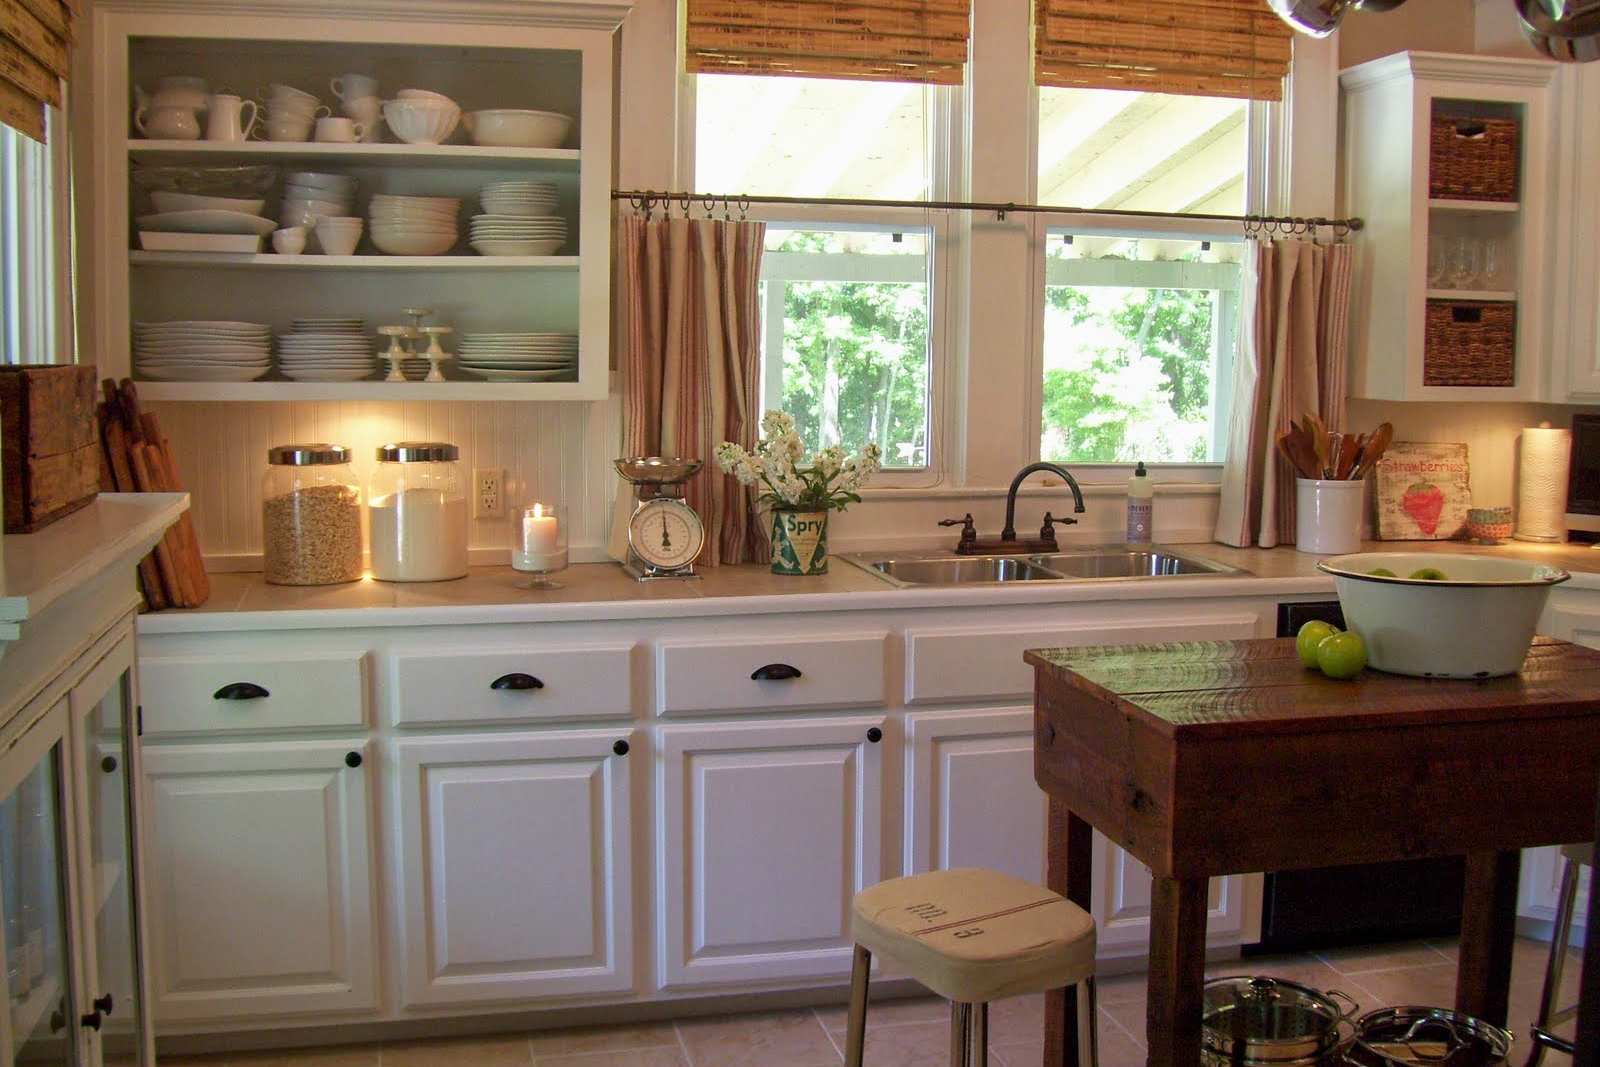 Kitchen Remodeling And Design remodeling a kitchen | do it yourself kitchen remodel